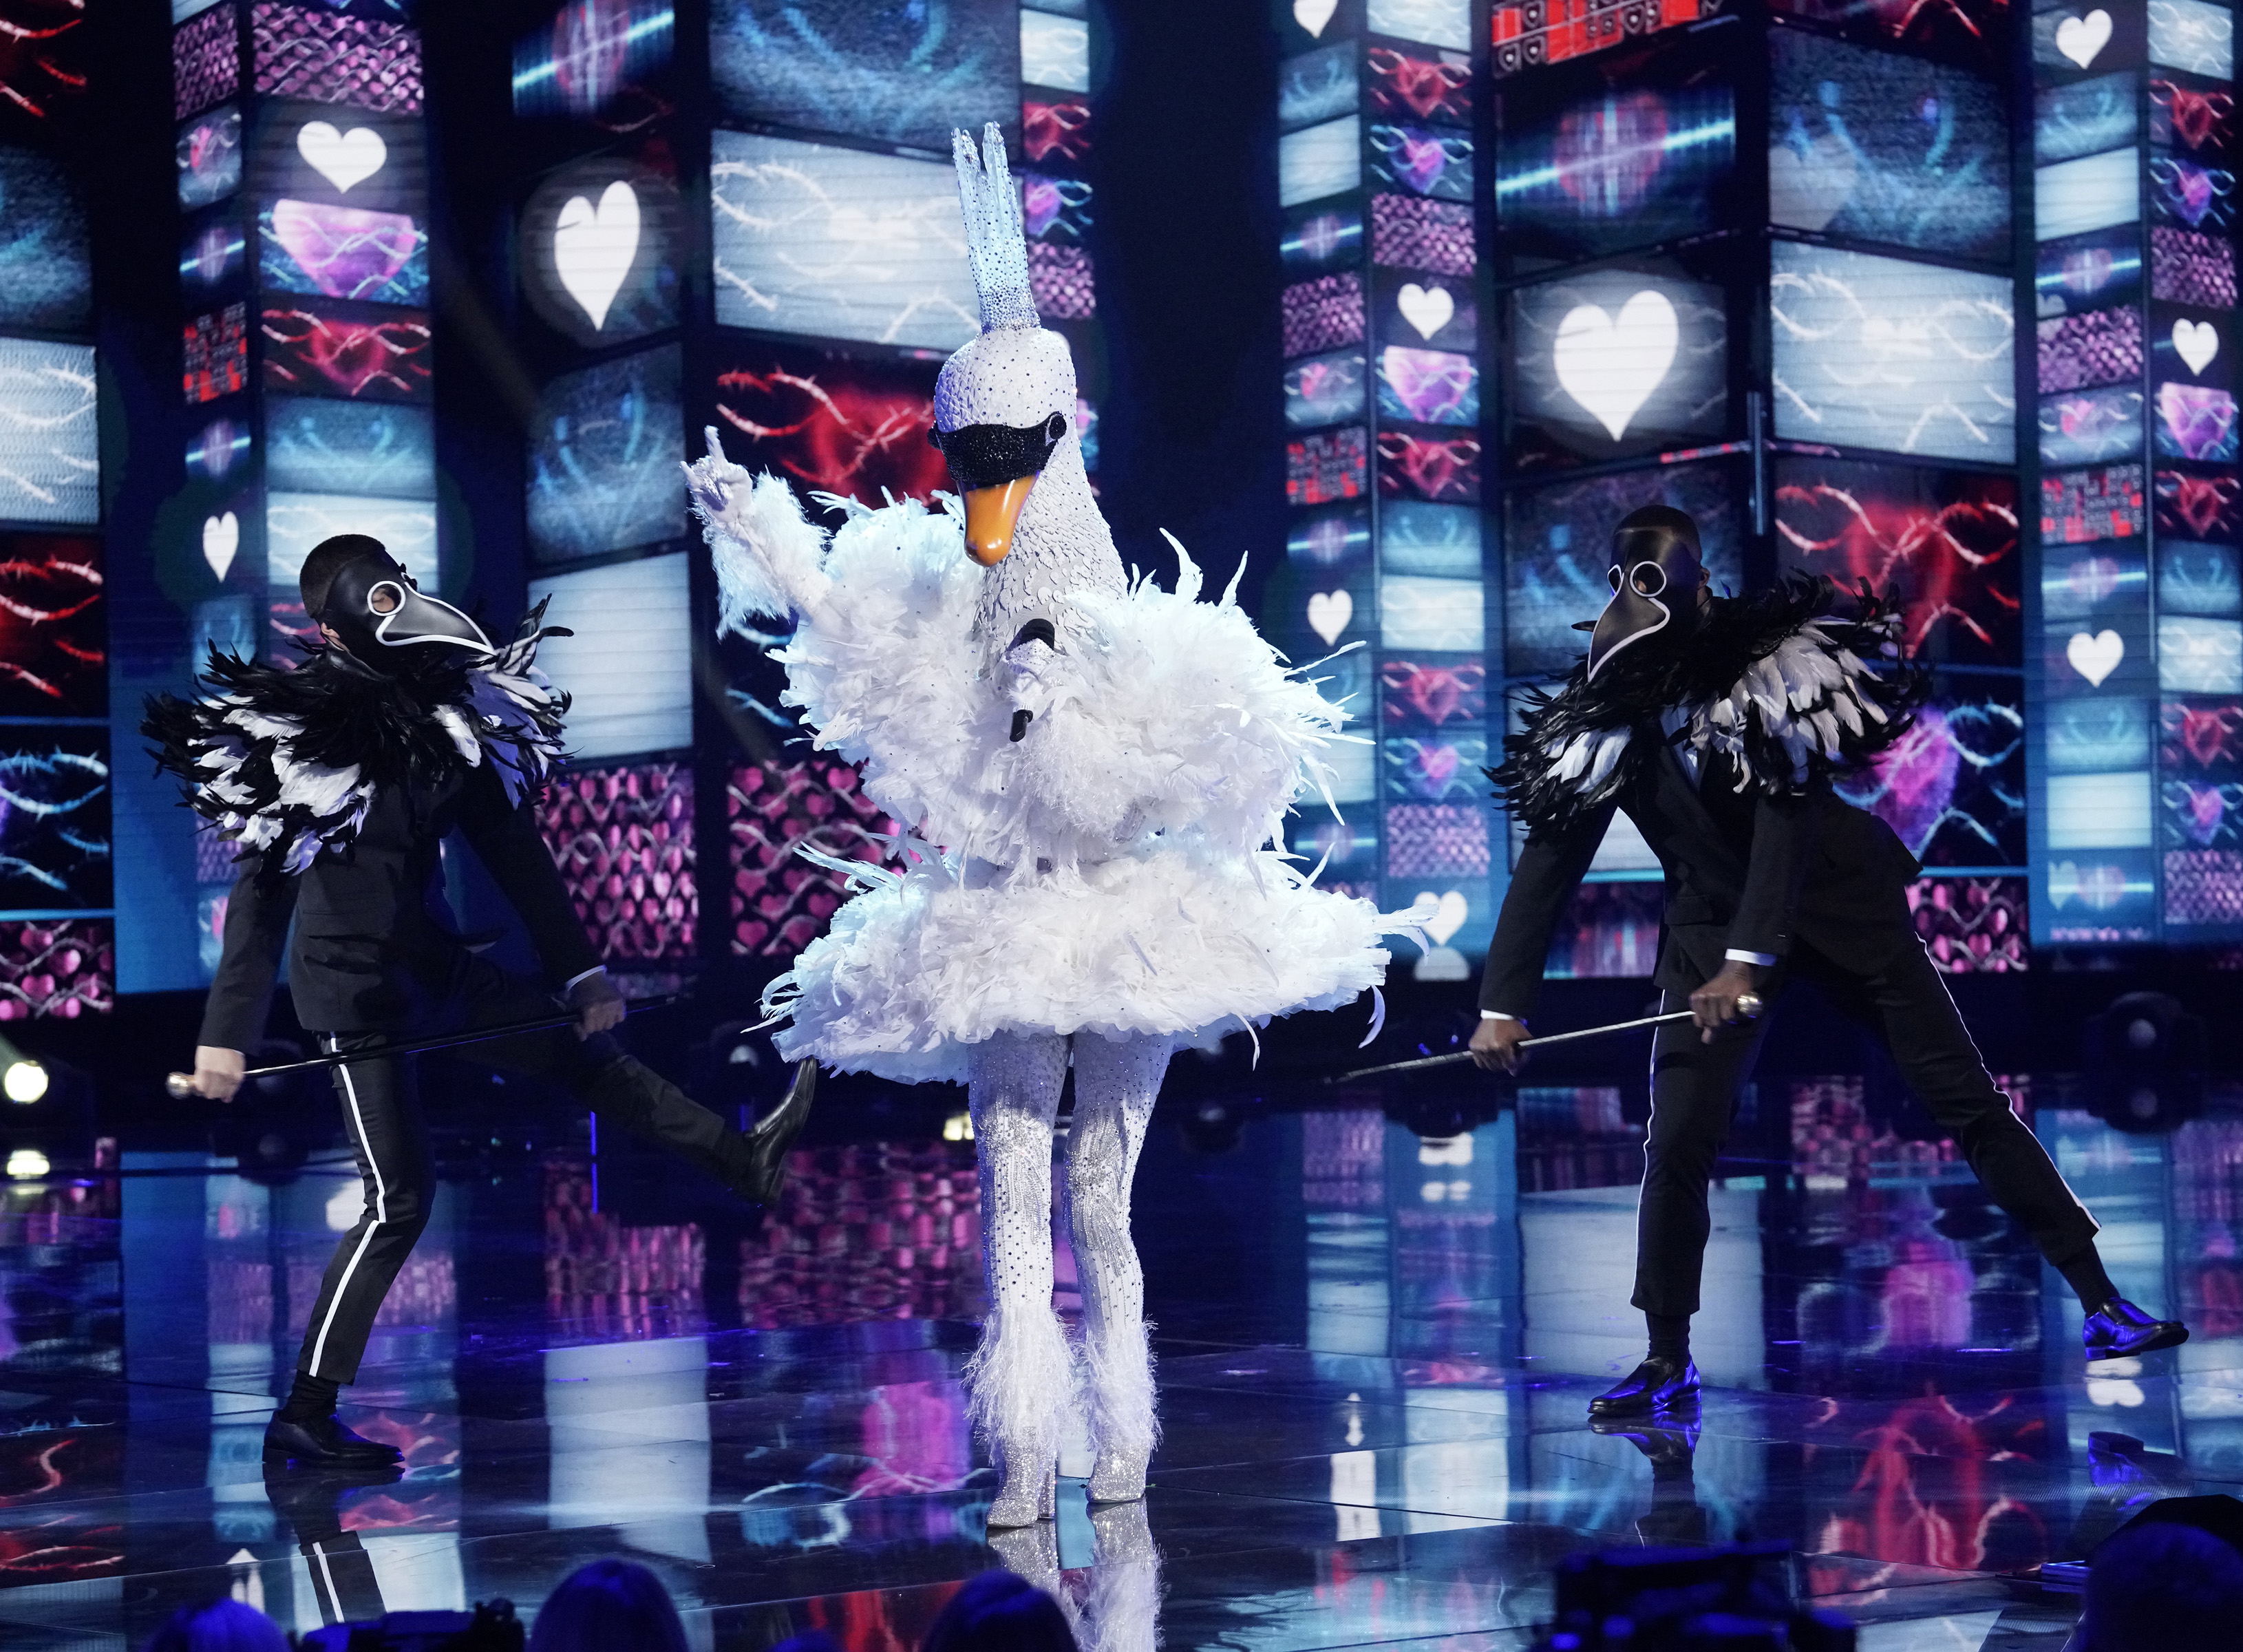 The Masked Singer Reveals The Identity Of The Swan Variety